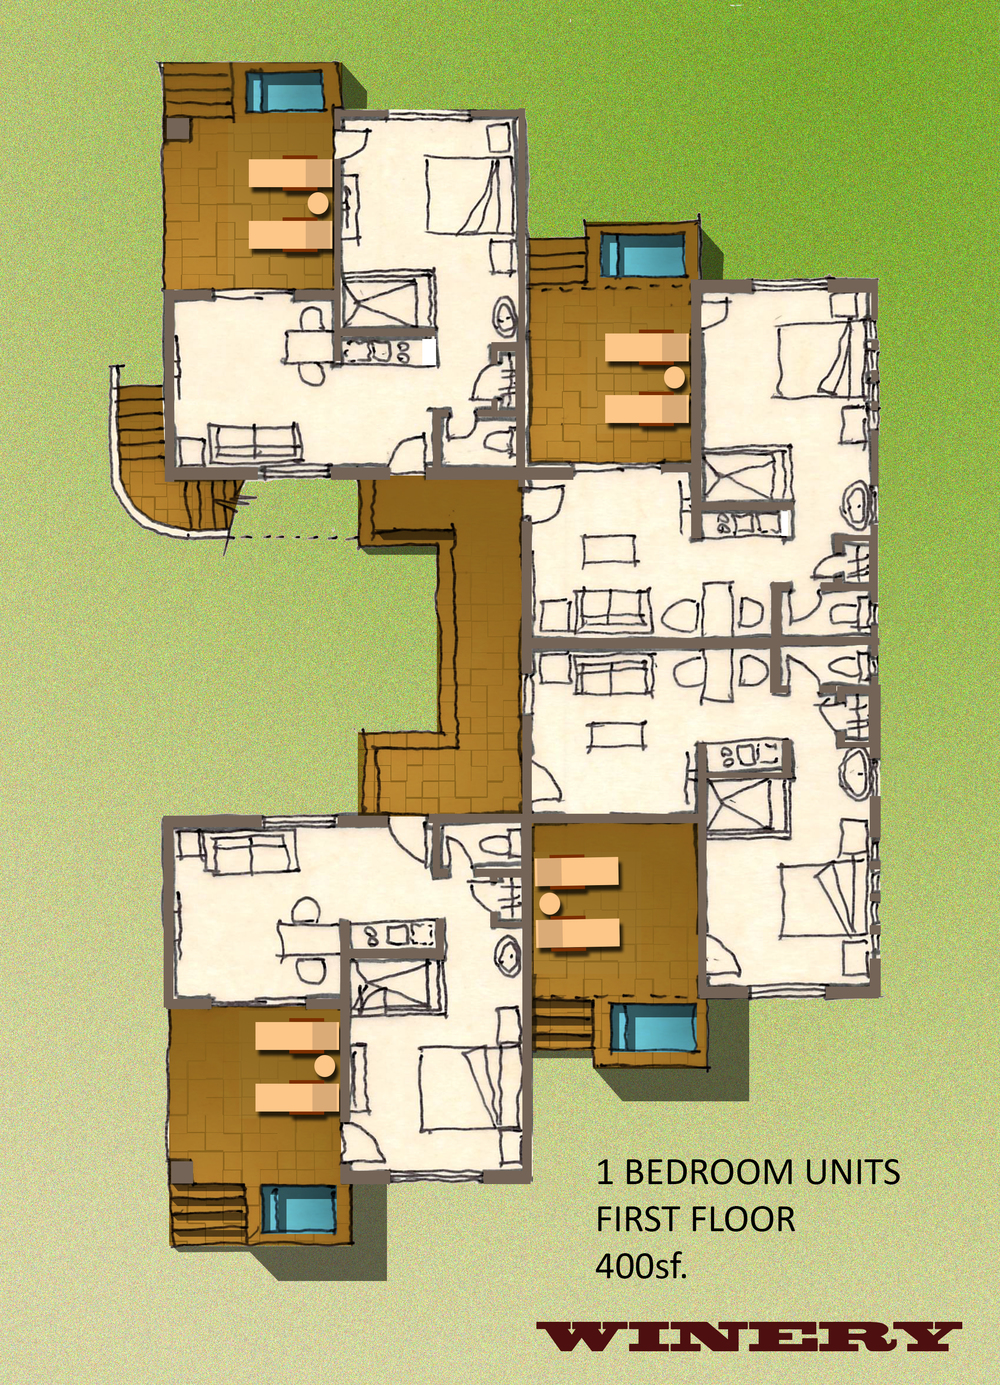 1 bedroom unit first floor.jpg